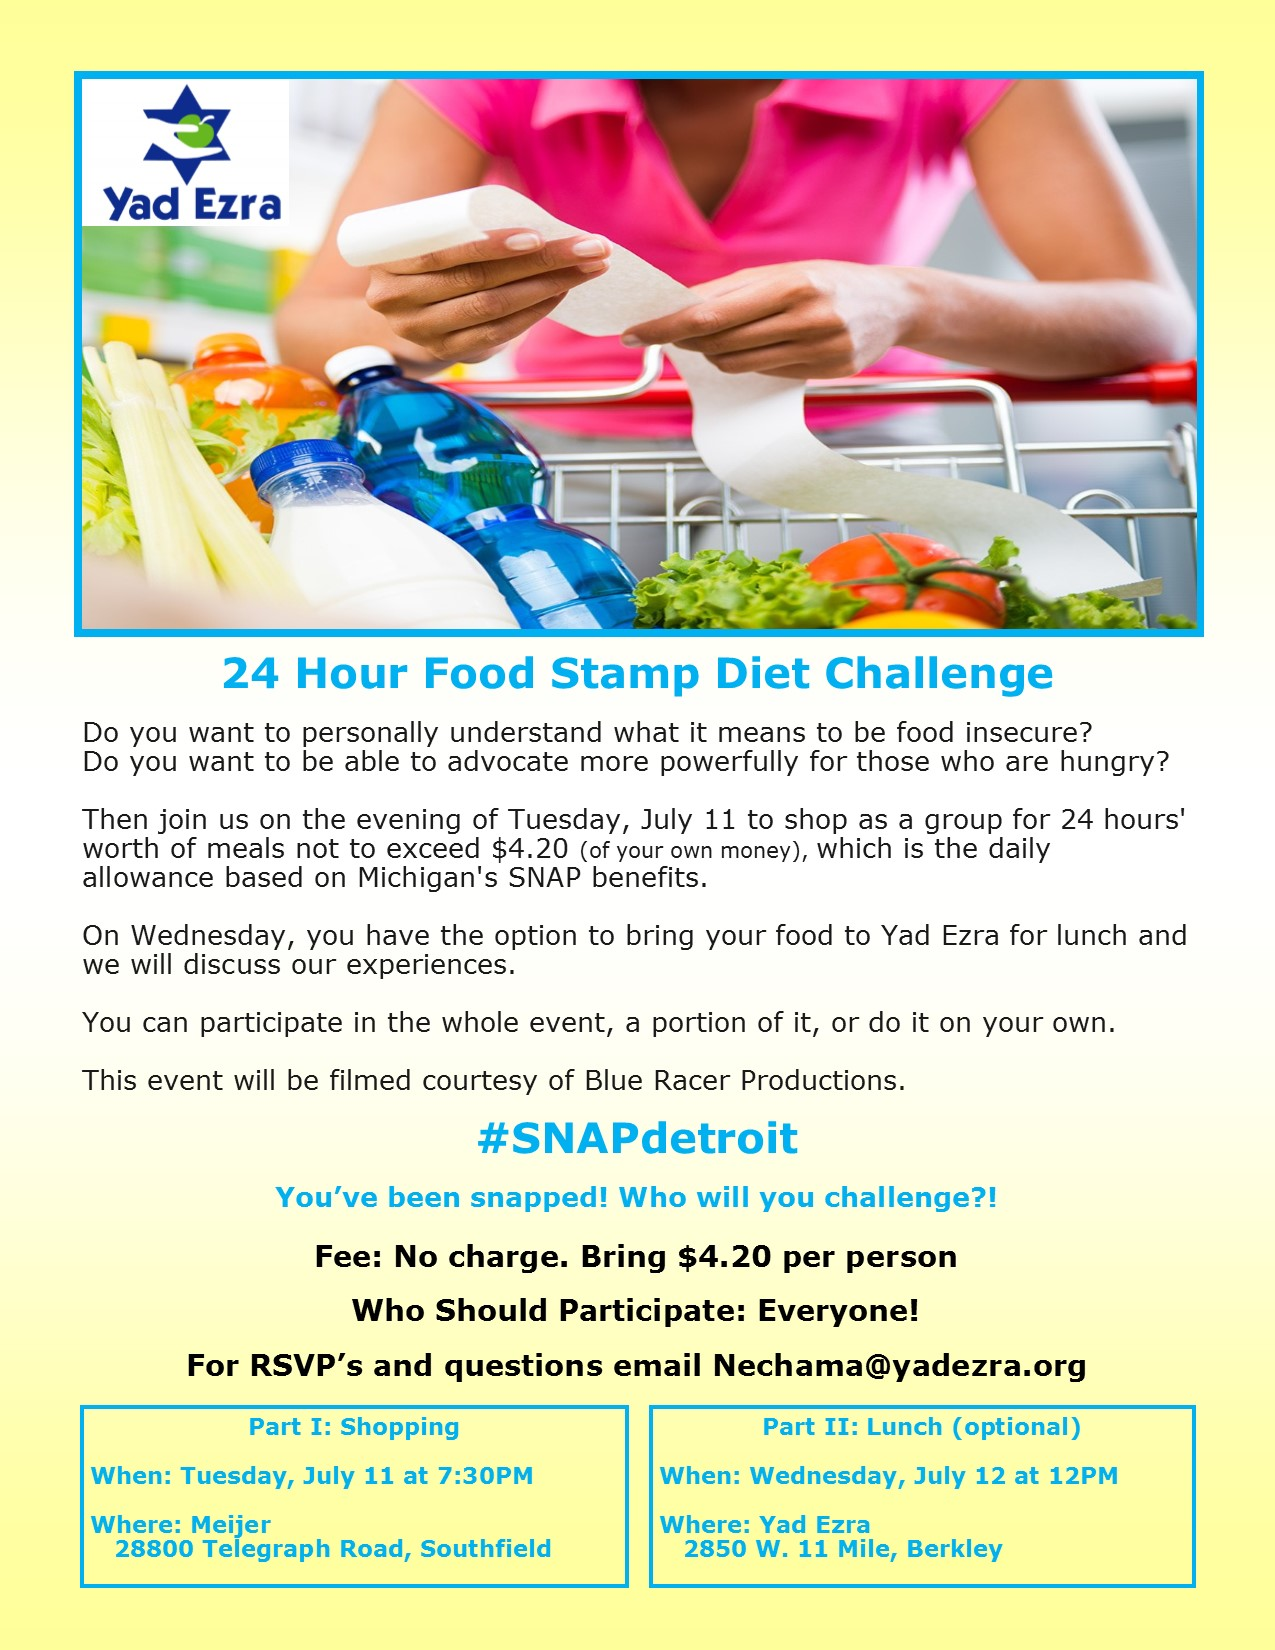 24 Hour Food Stamp Challenge